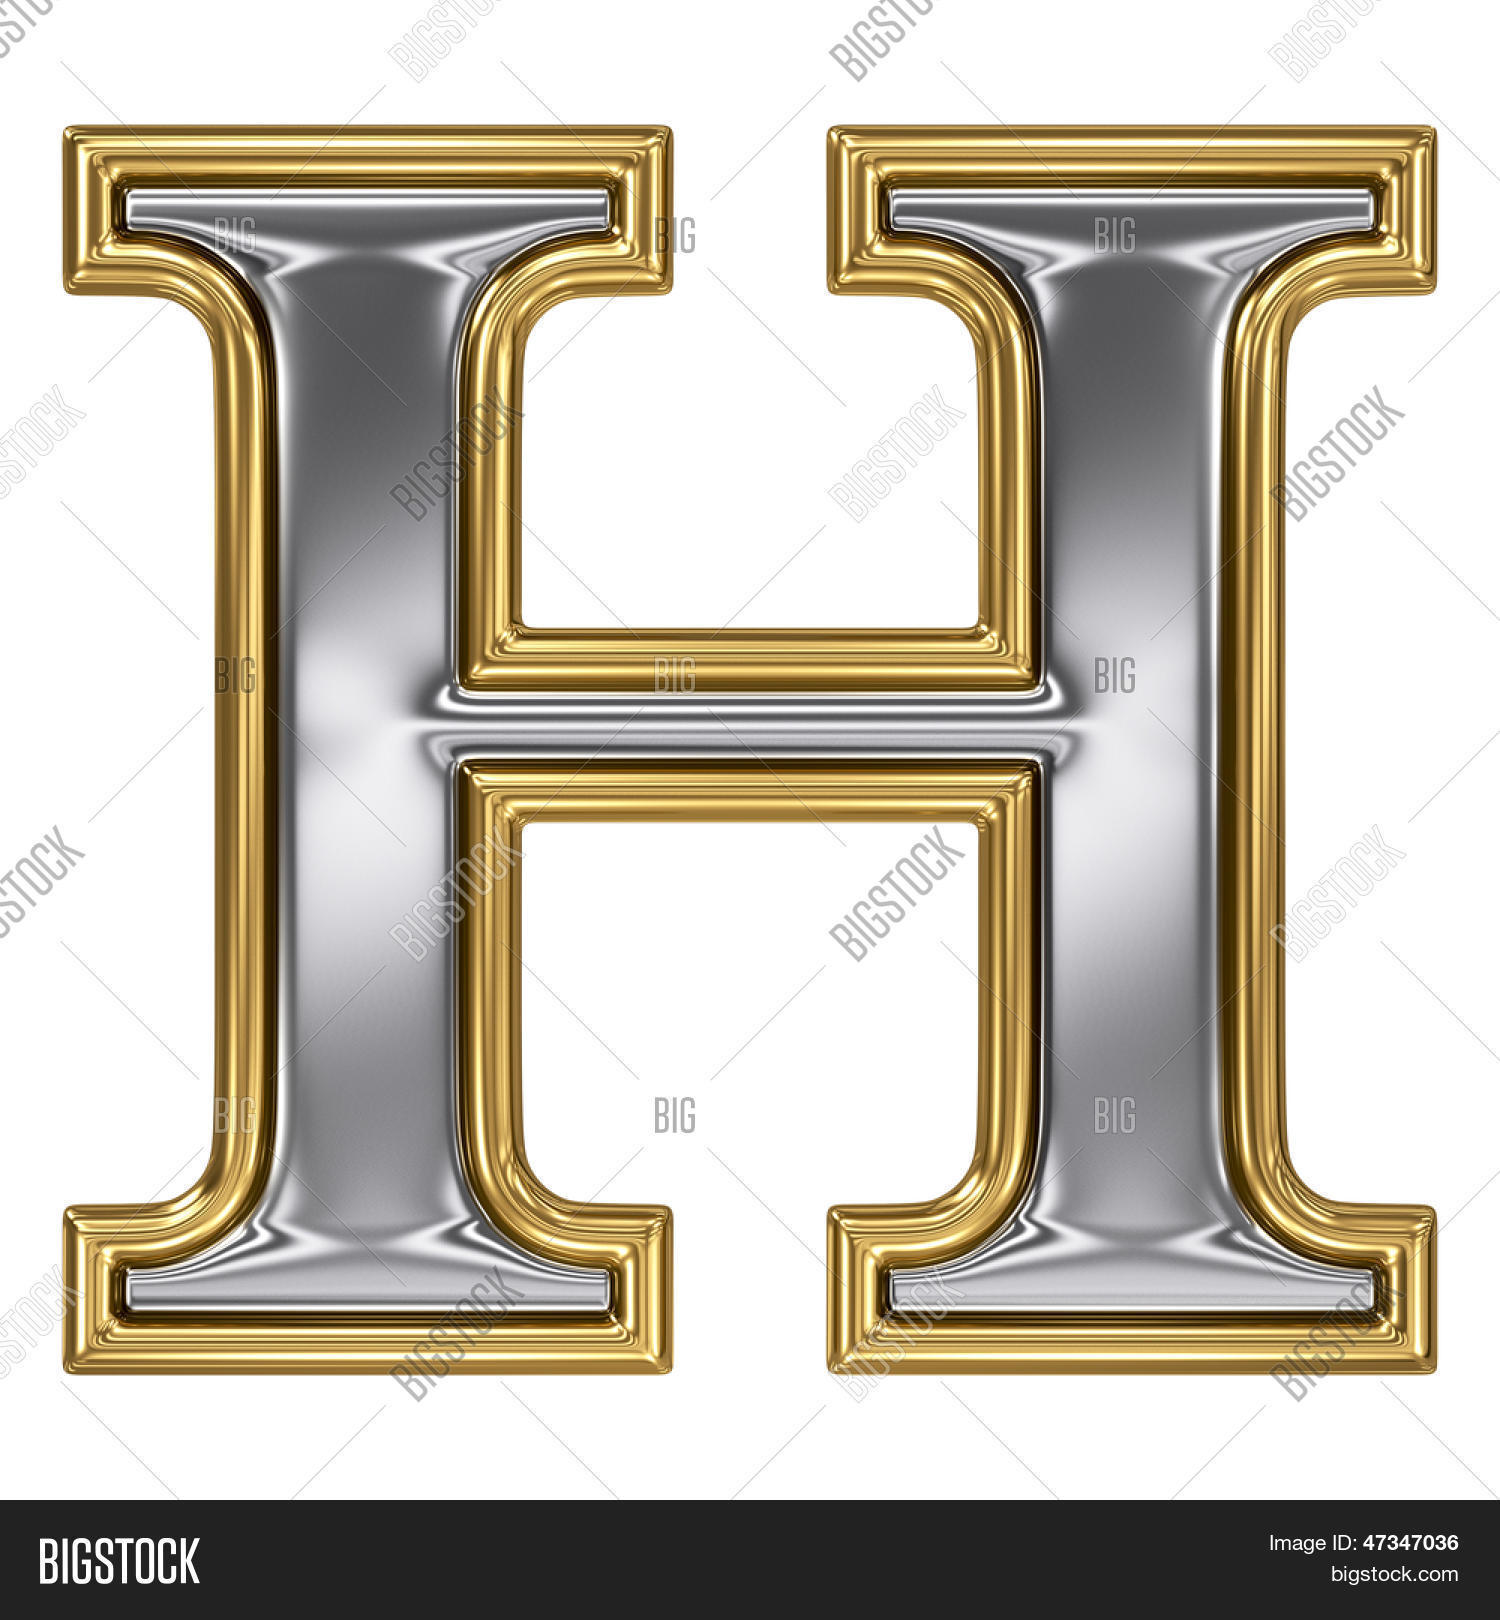 Silver Letter H: Metal Silver Gold Alphabet Letter Image & Photo